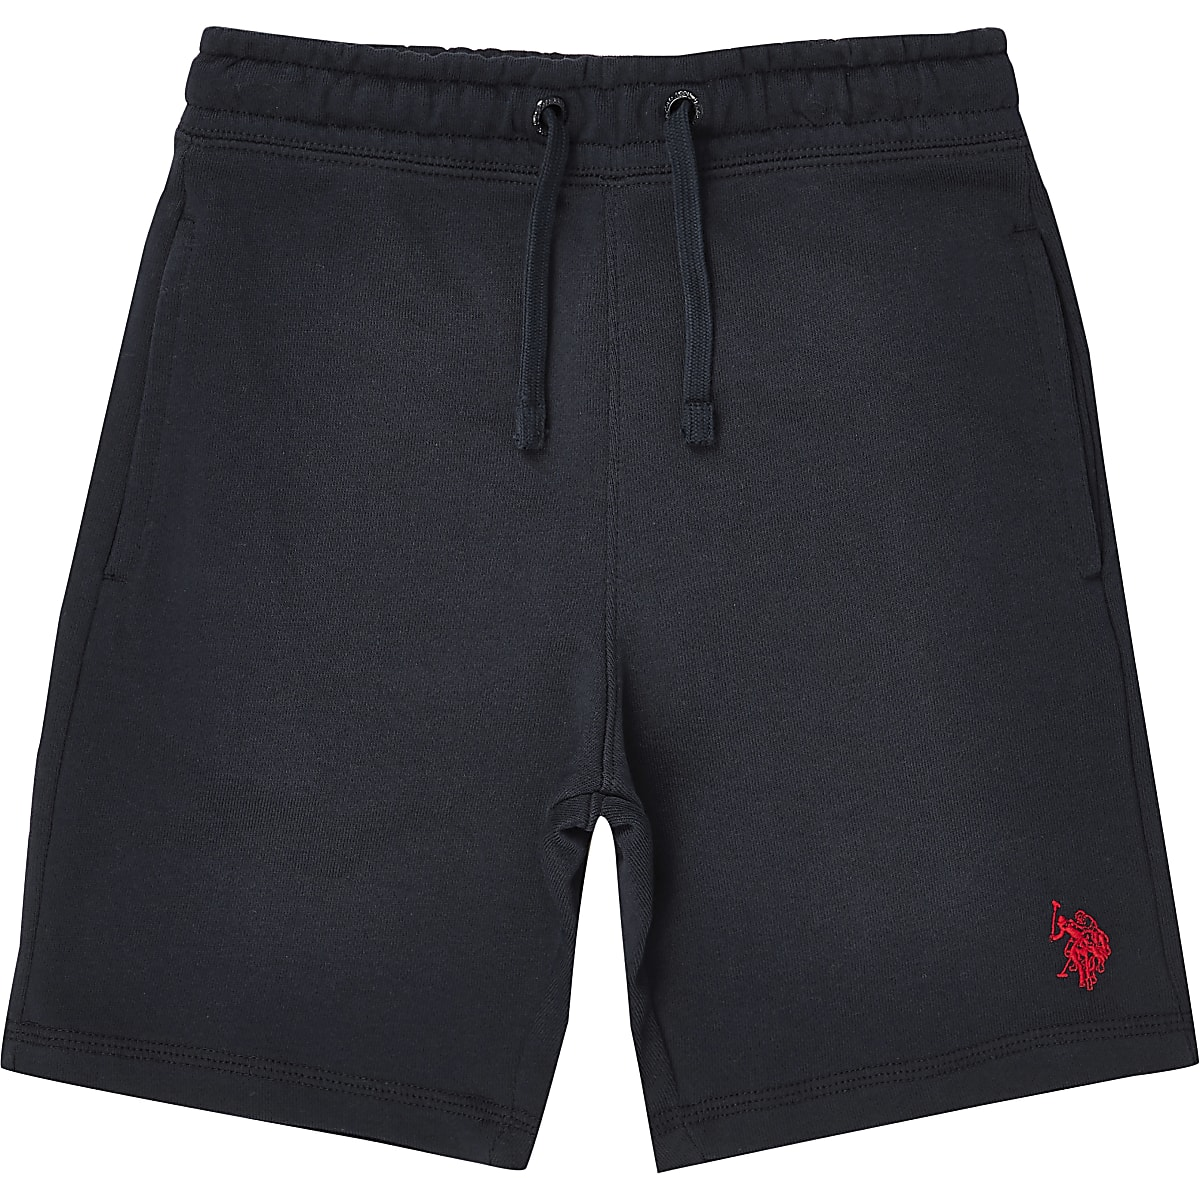 Boys navy U.S. Polo Assn. jersey shorts